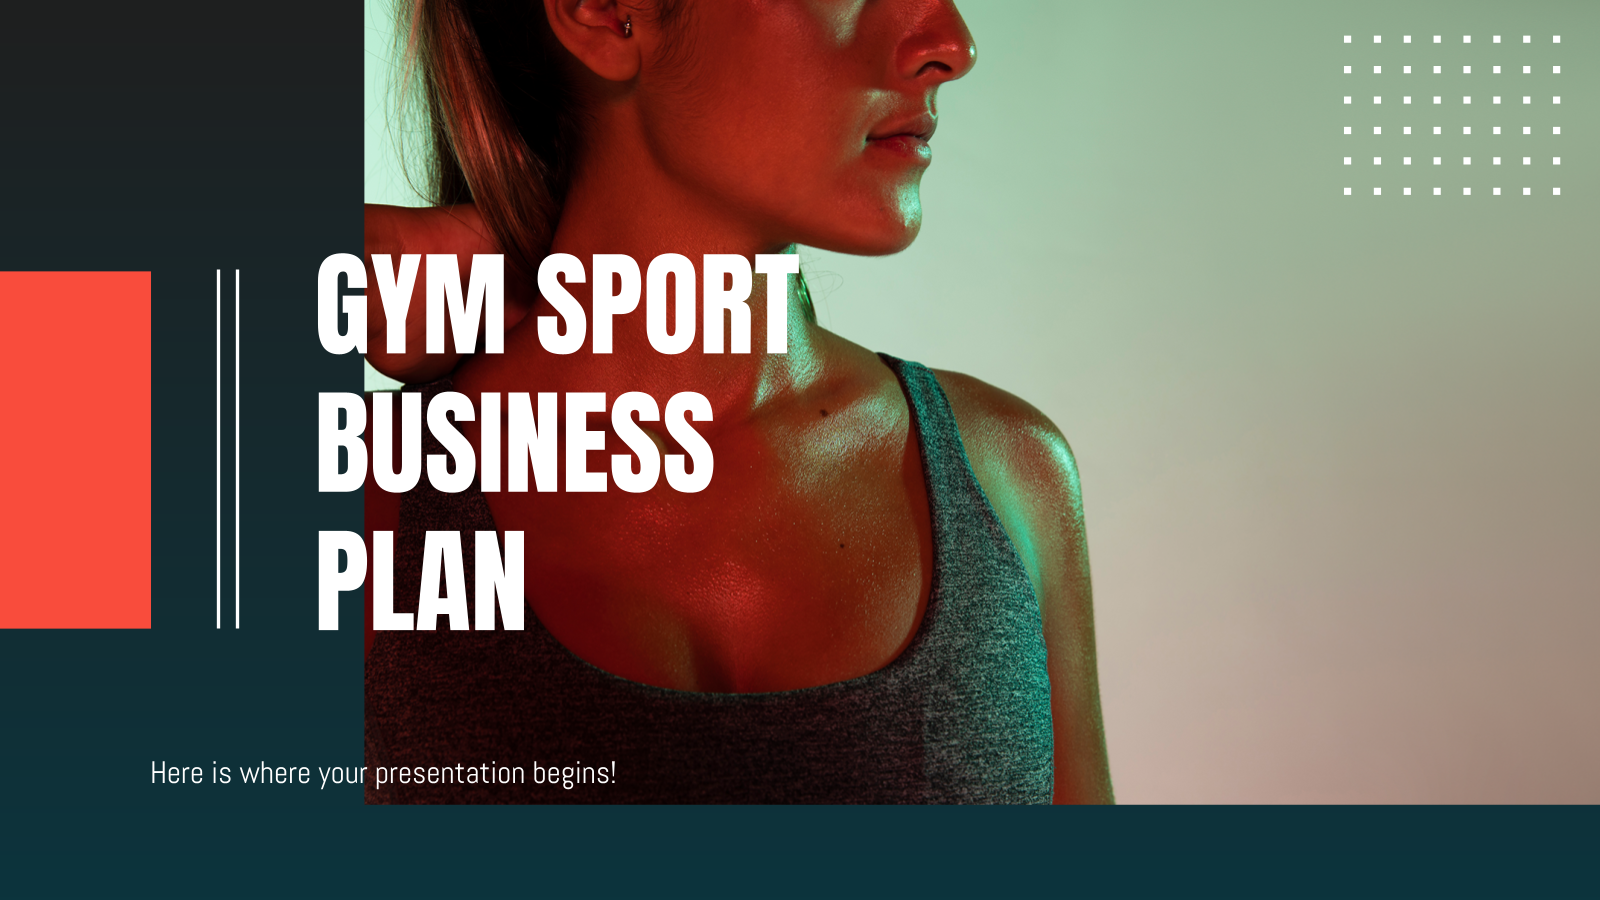 Gym Sport Business Plan presentation template